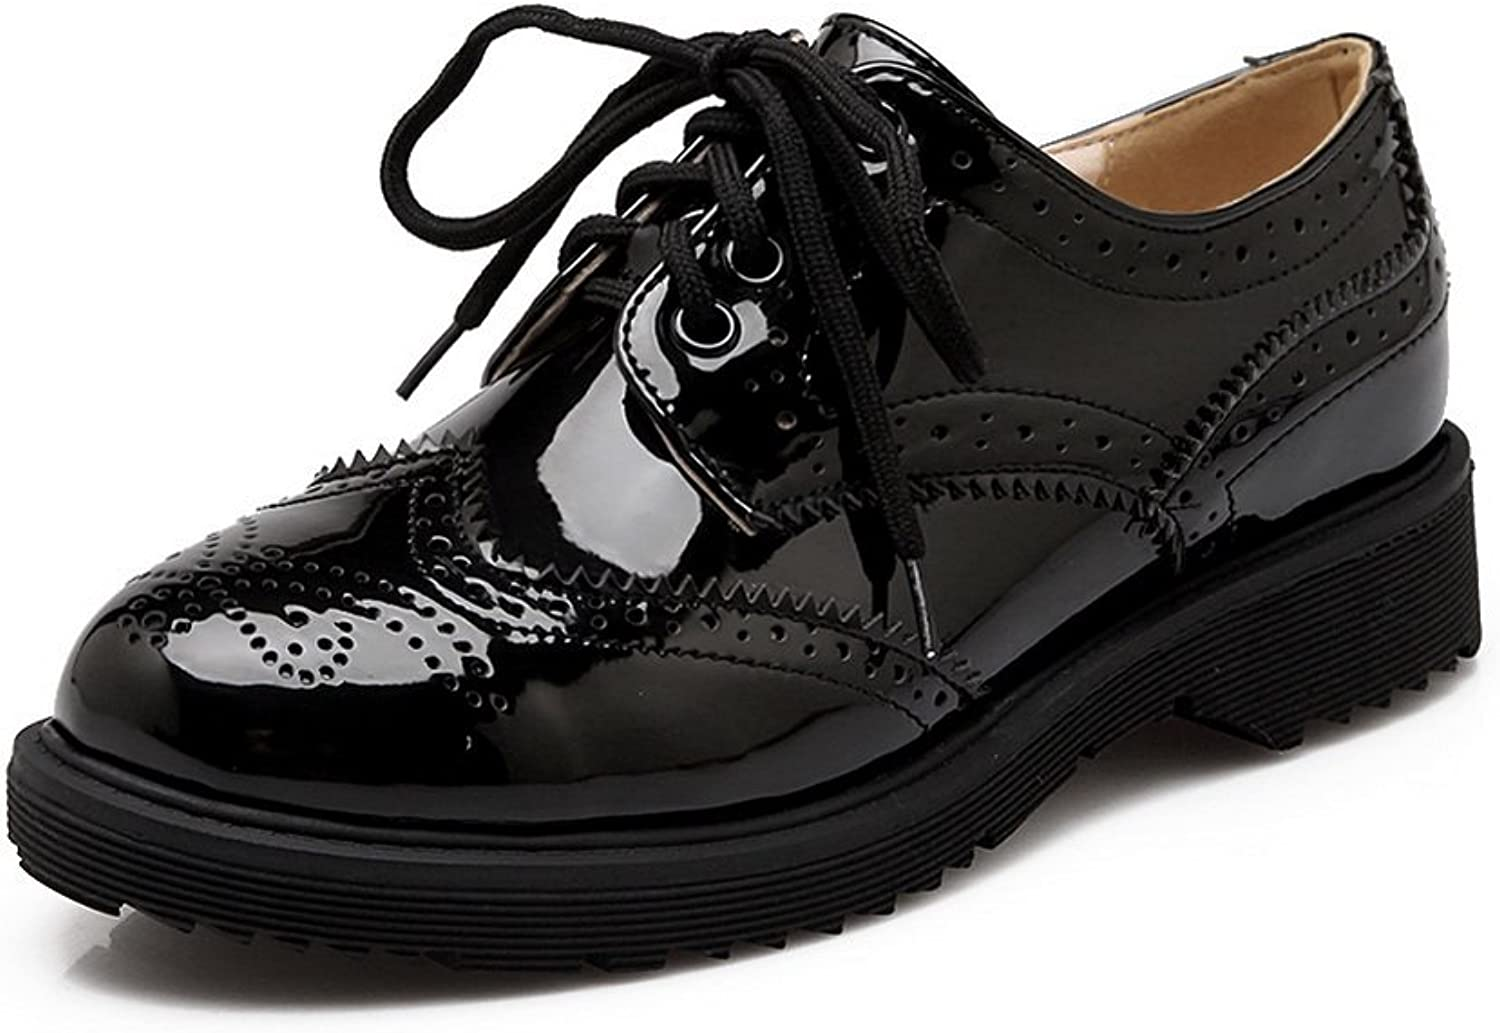 1TO9 Womens Hollow Out Lace-Up Low-Heels Black Patent Leather Pumps-shoes - 5 B(M) US